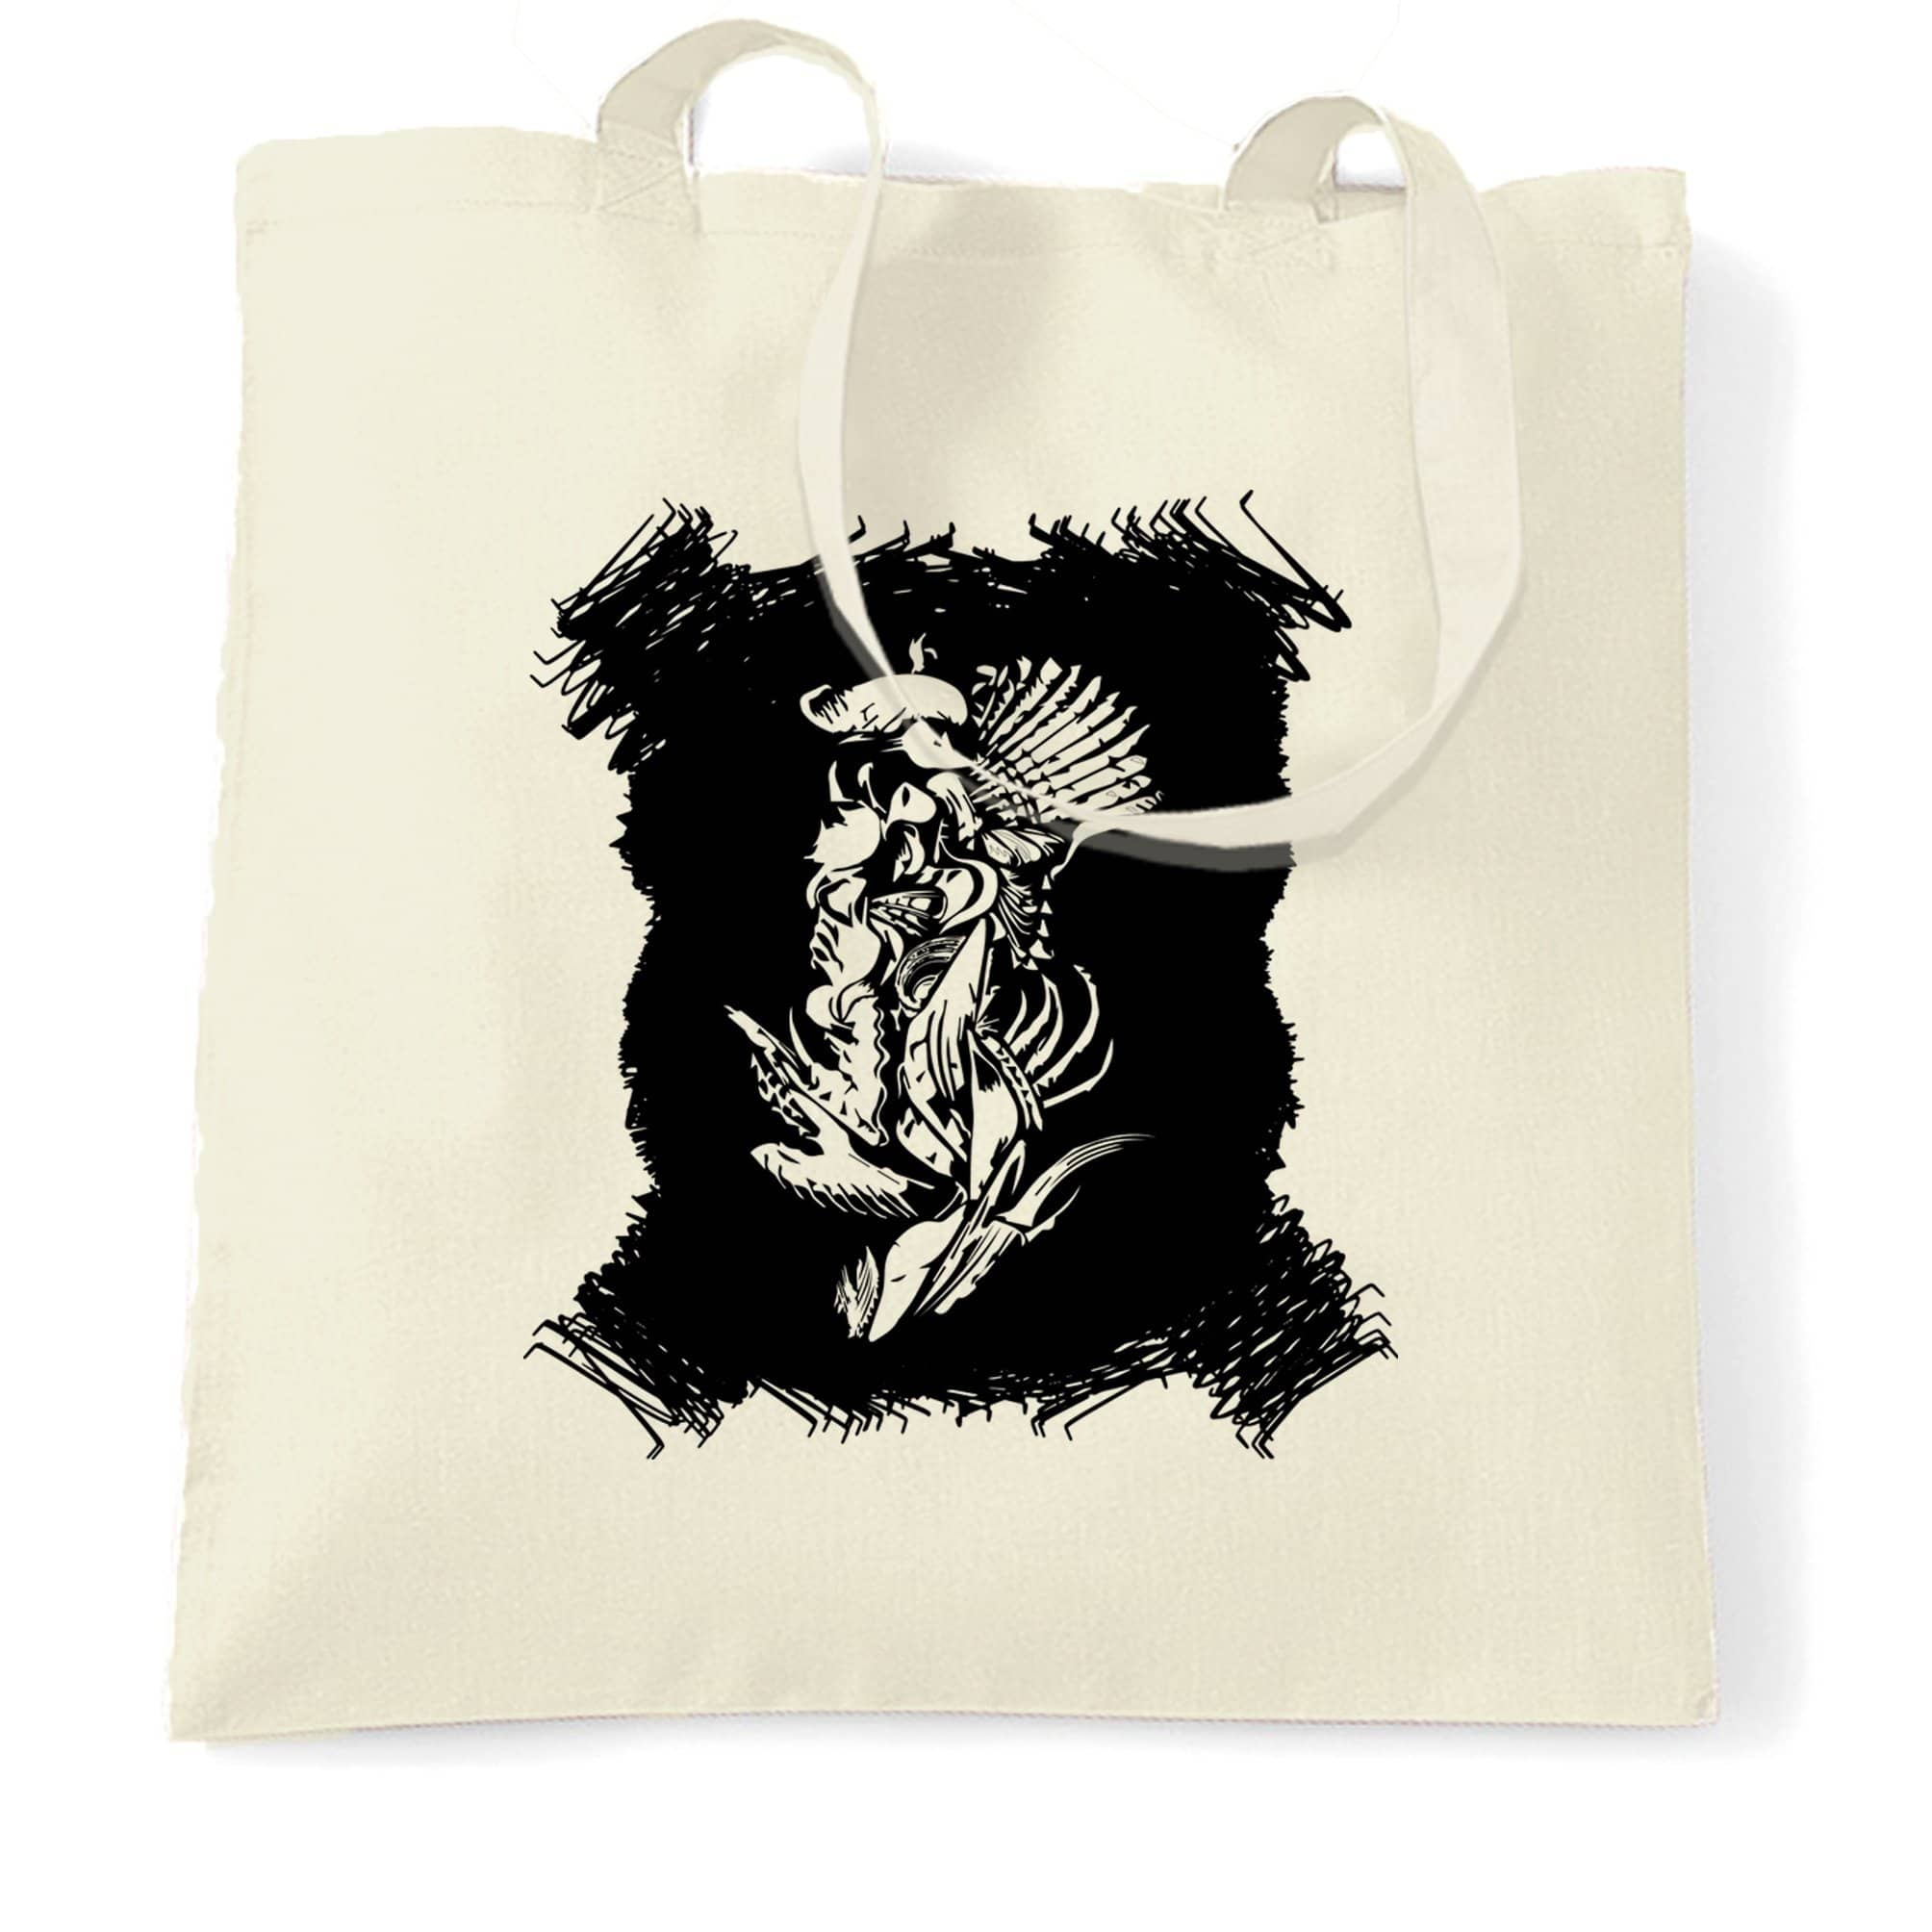 Abstract Tribal Art Tote Bag Native American Indian